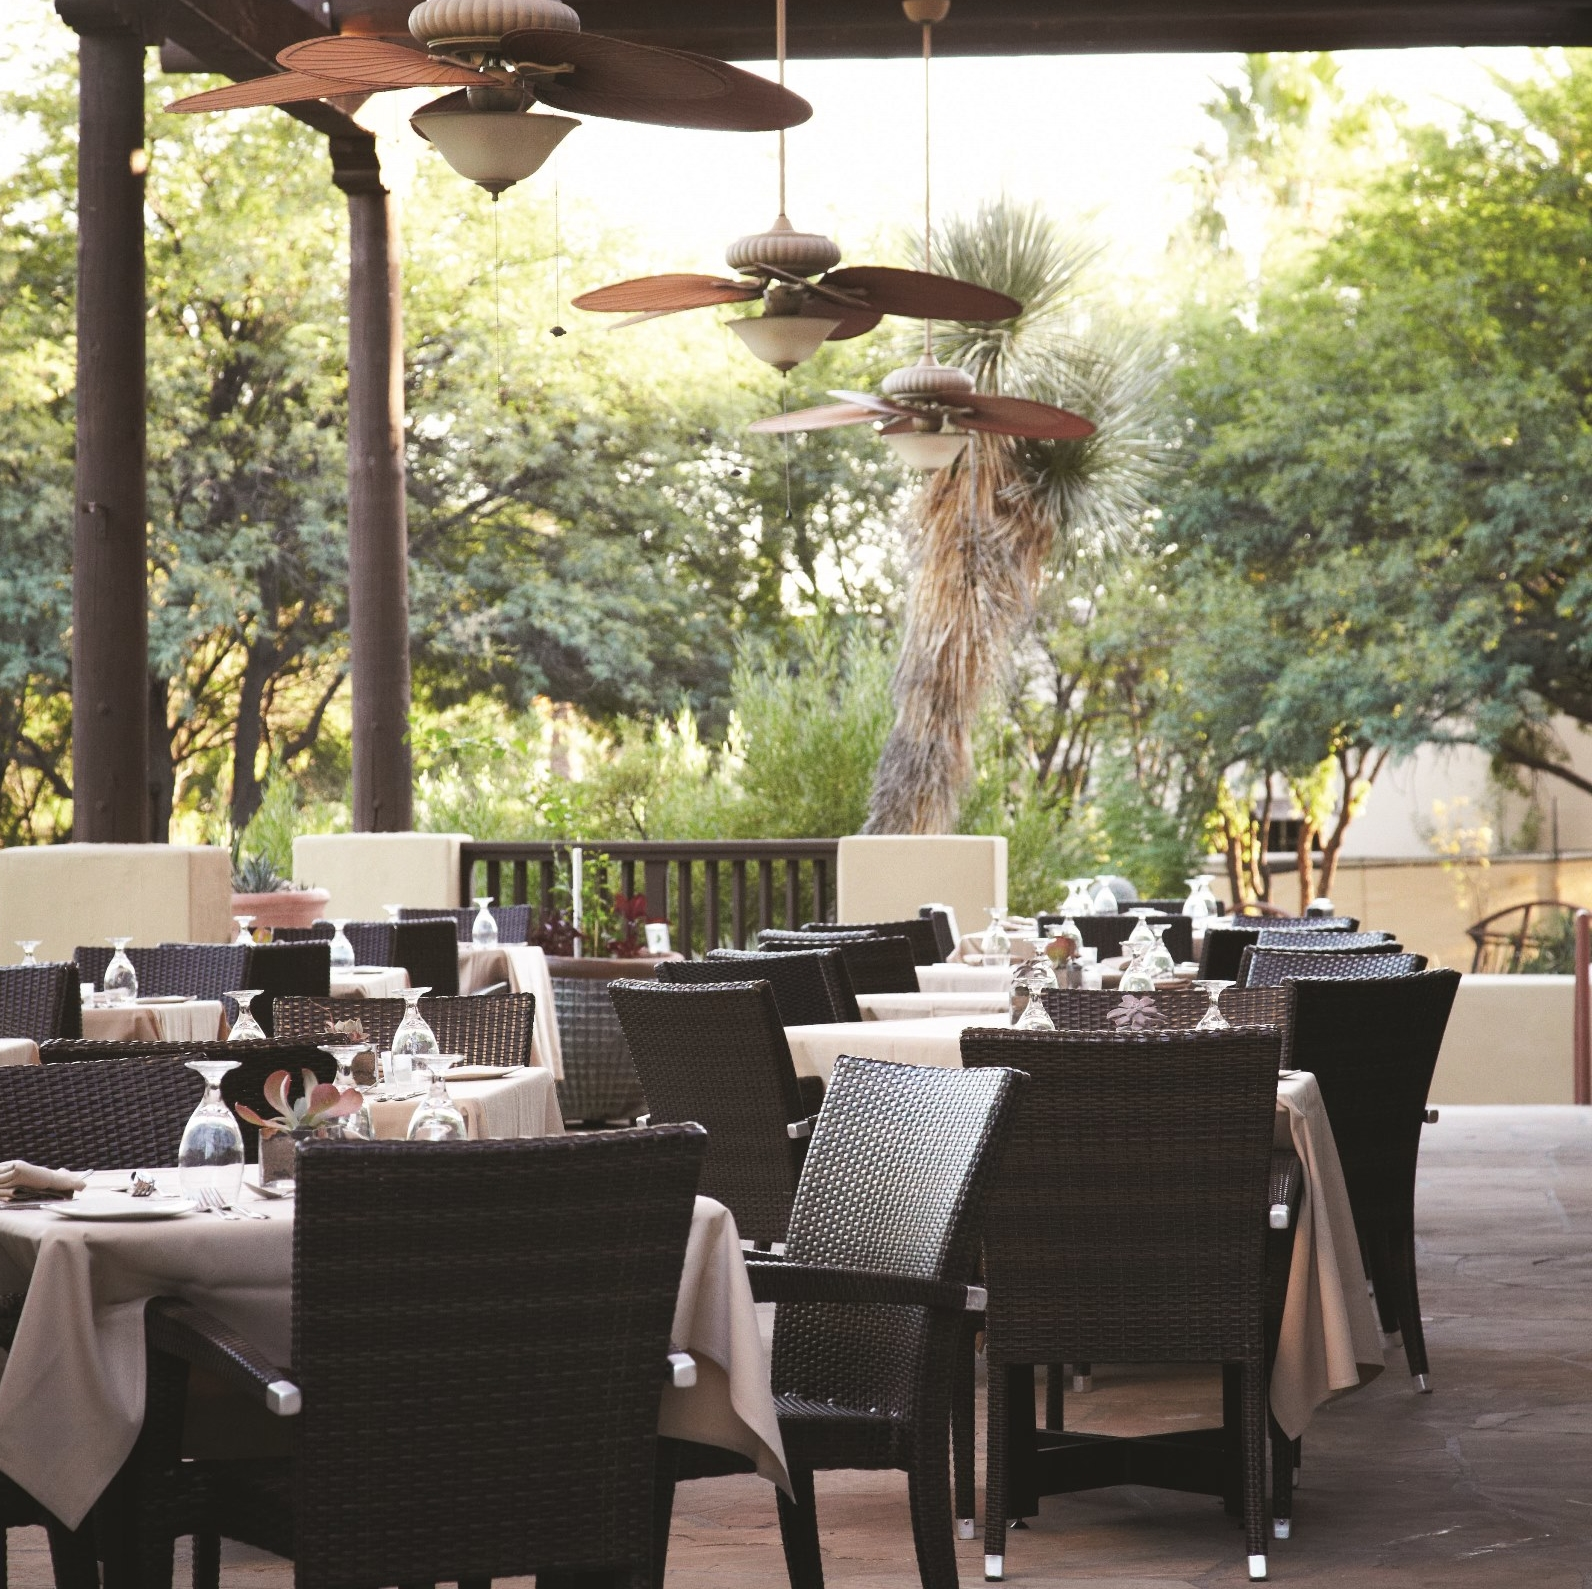 outdoor dining in an elegant setting and under a covered awning